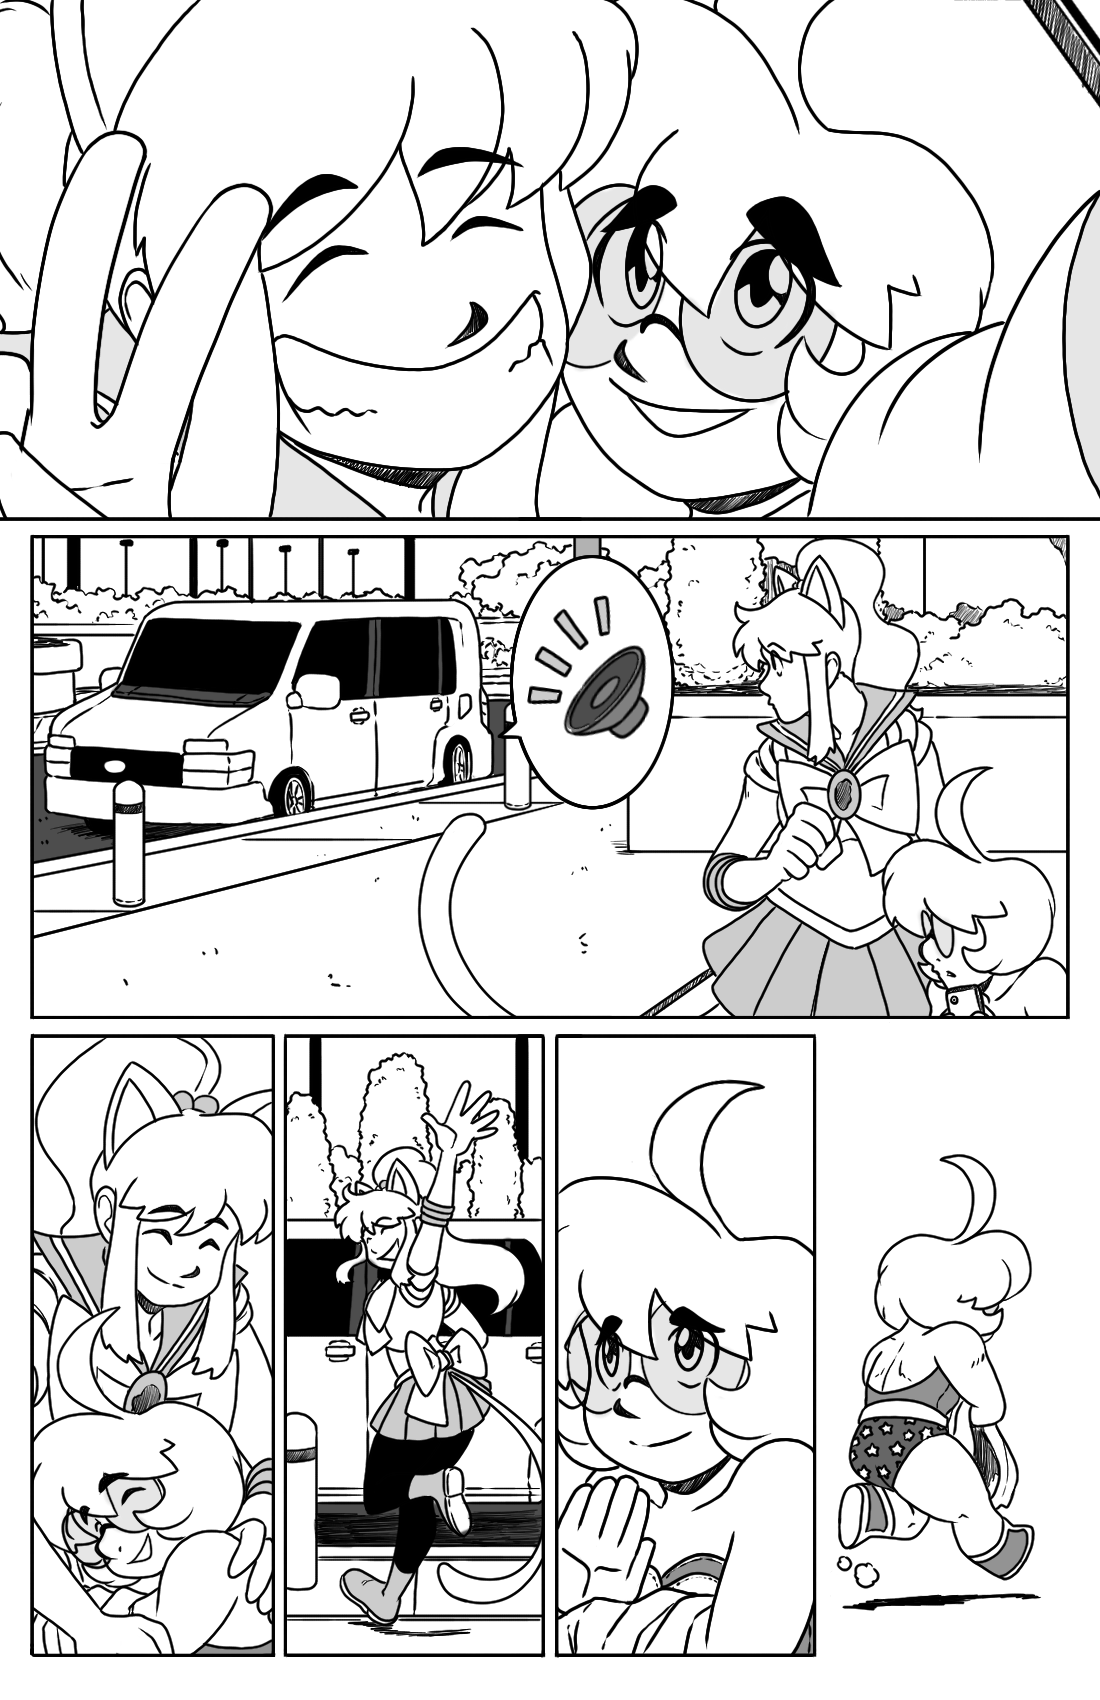 Convention Encounter pg.17